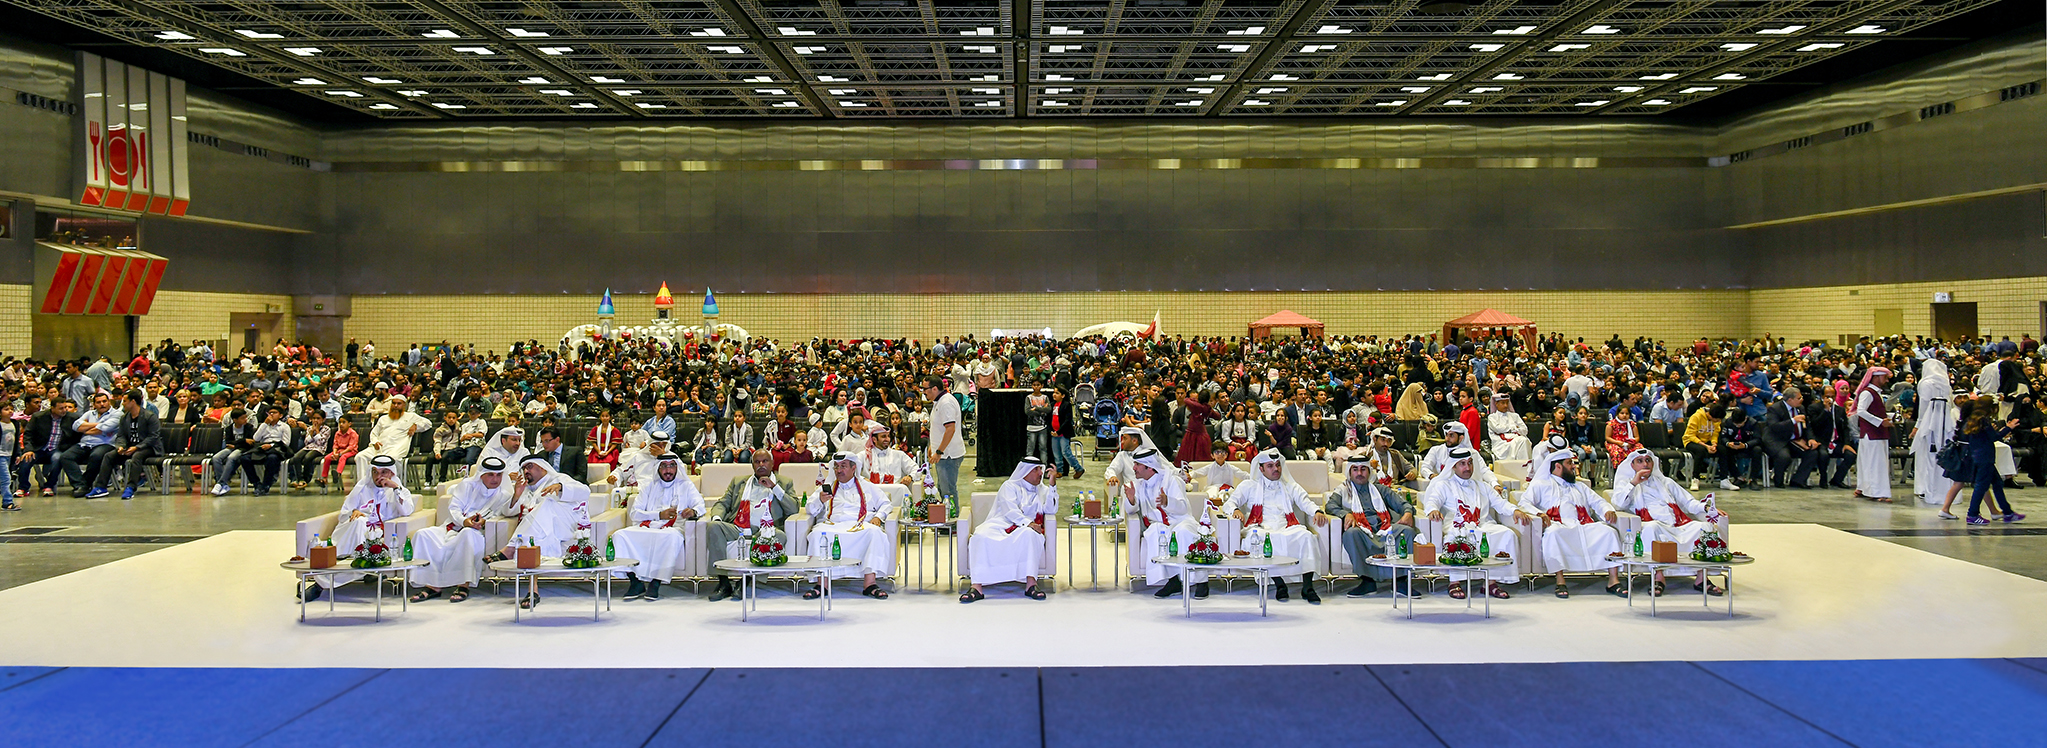 Qatar Steel celebrates National Day